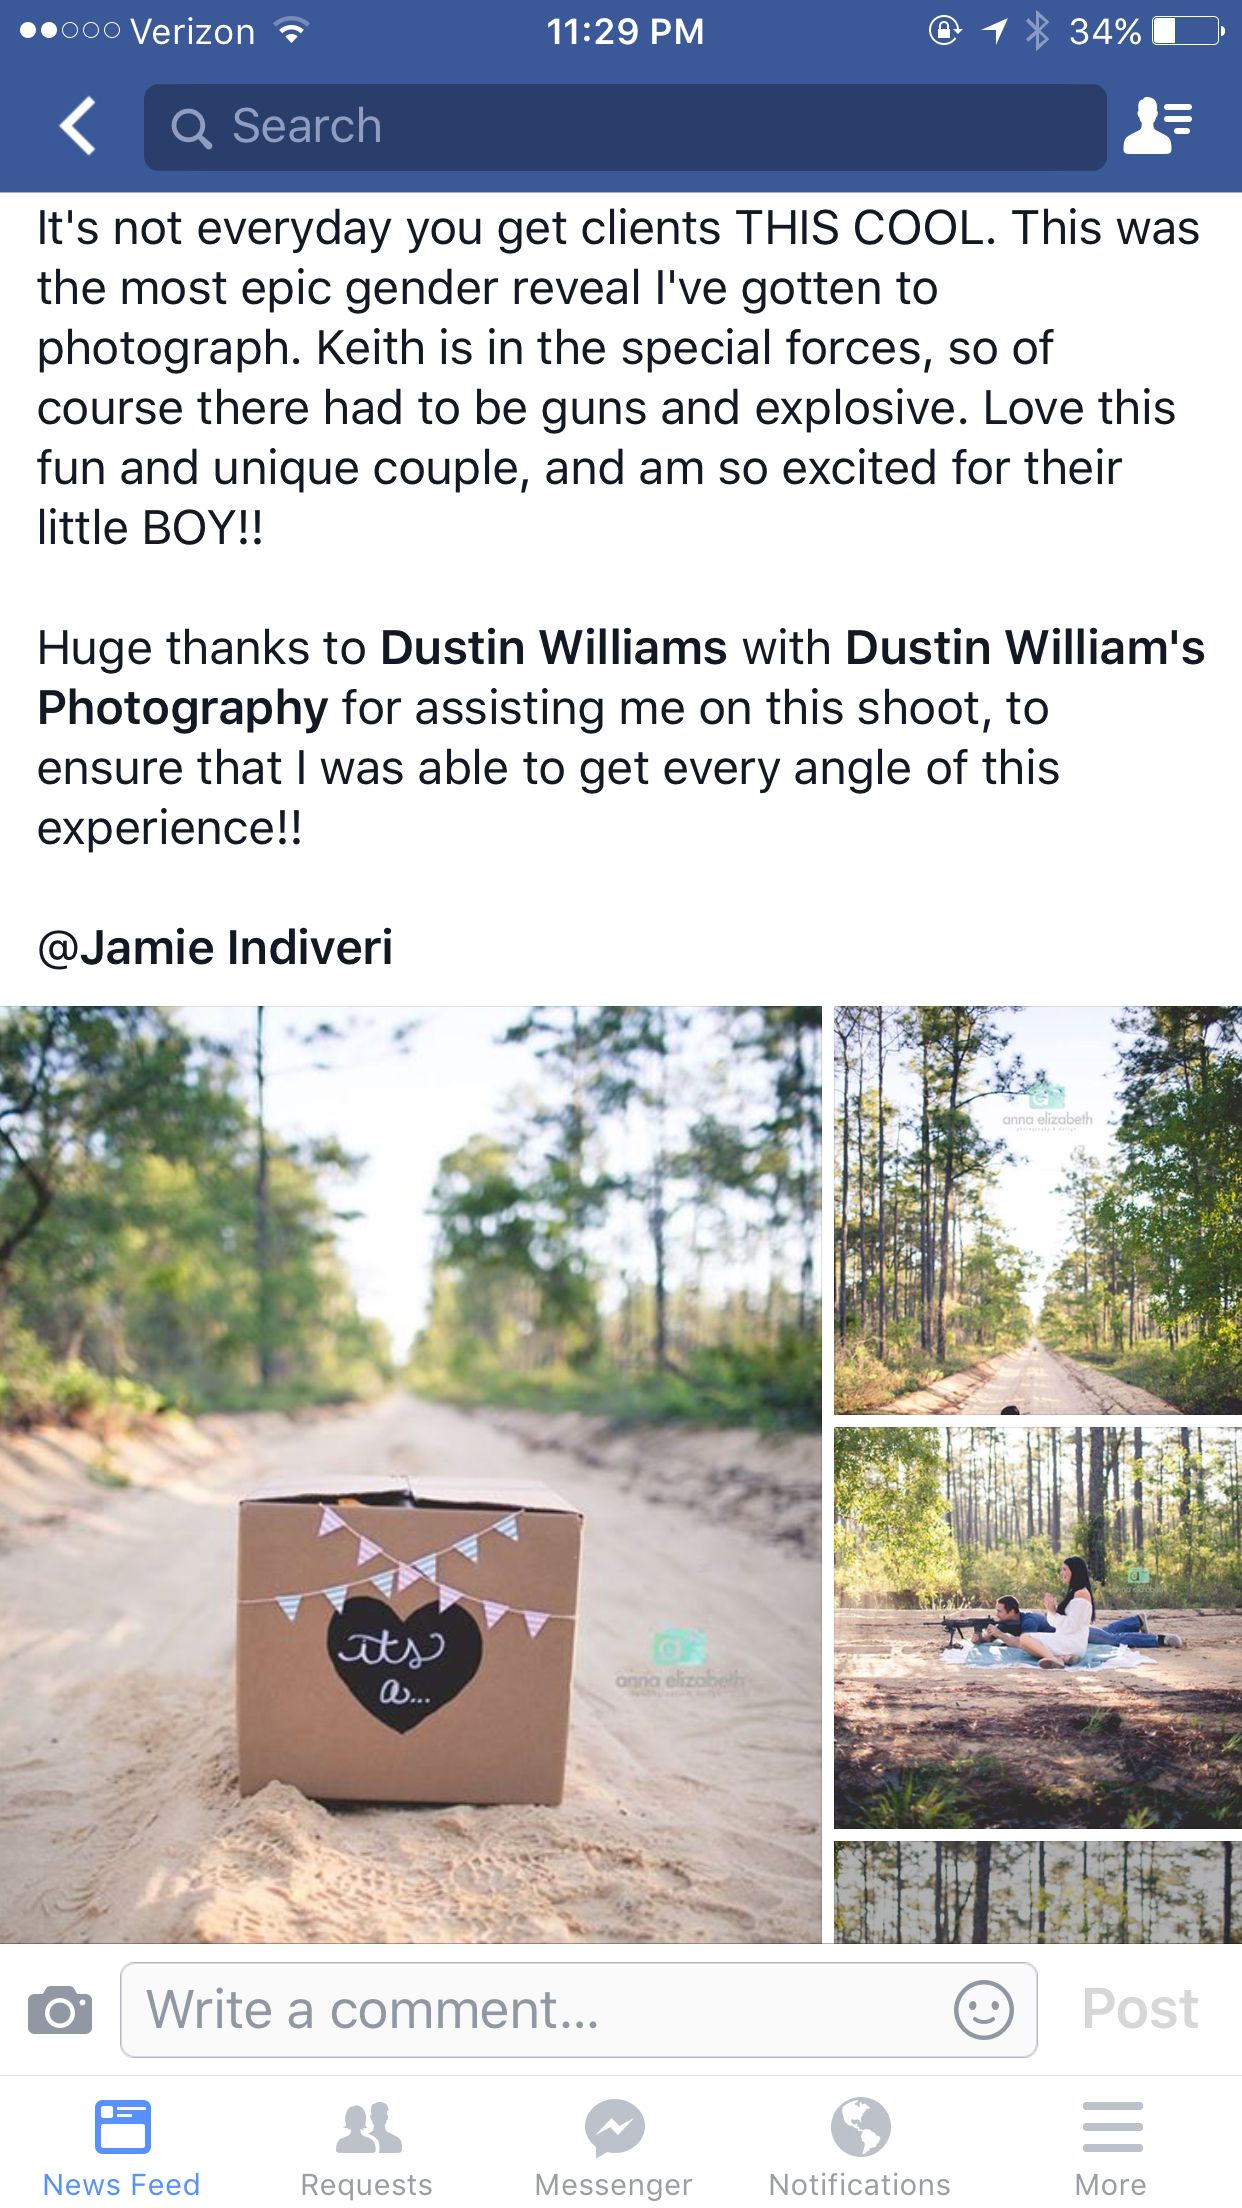 Gender reveal- shooting at an explosive dyed pink or blue!!